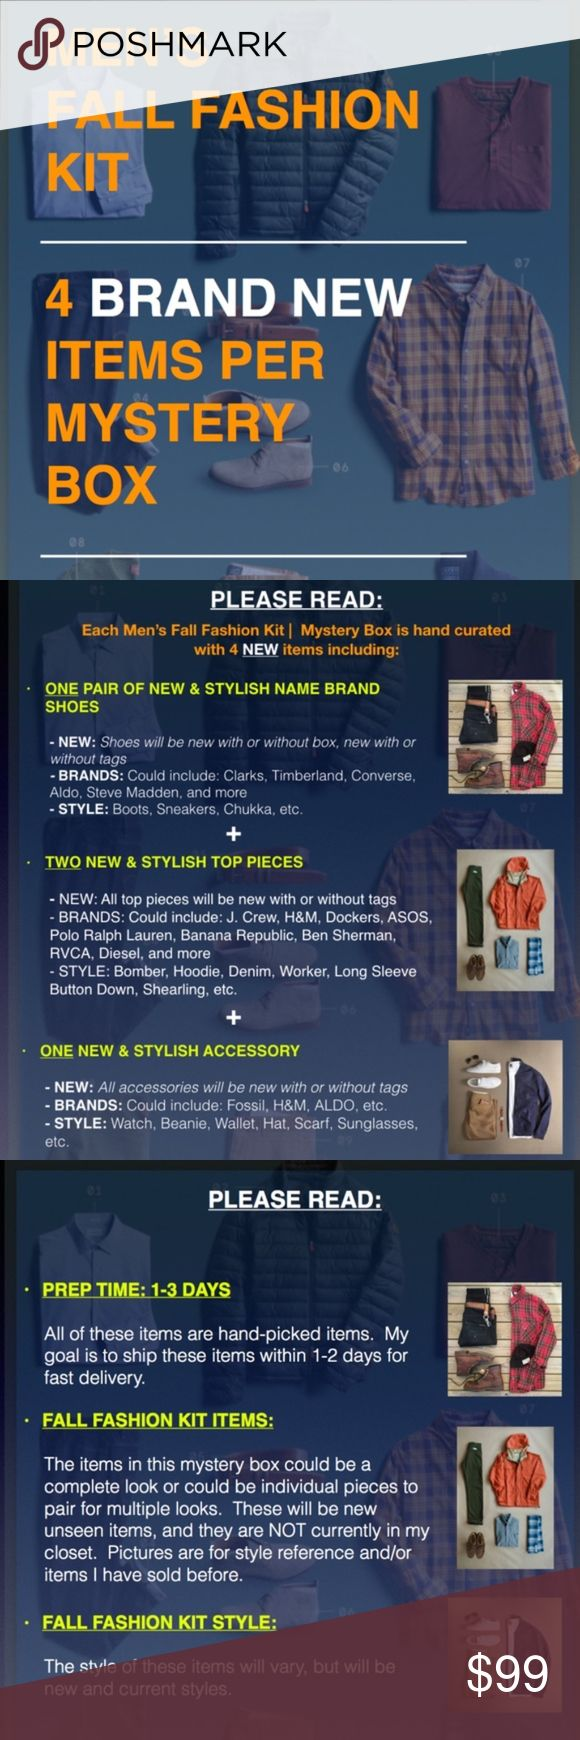 MEN'S FALL MYSTERY BOX (4 NEW ITEMS) *PLEASE READ*   *PRICE IS FIRM*  The items in this mystery box could be a complete look or could be individual pieces to pair for multiple looks  Each Men's Fall Fashion Kit    Mystery Box is hand curated with 4 BRAND NEW items including (1) shoe, (2) top, (1) accessory  Brands could include: J. Crew, H&M, Dockers, ASOS, Polo Ralph Lauren, Clarks, Timberland, Converse, Steve Madden, RVCA, Diesel, ALDO,  Adidas, The North Face, OBEY, & more  After…